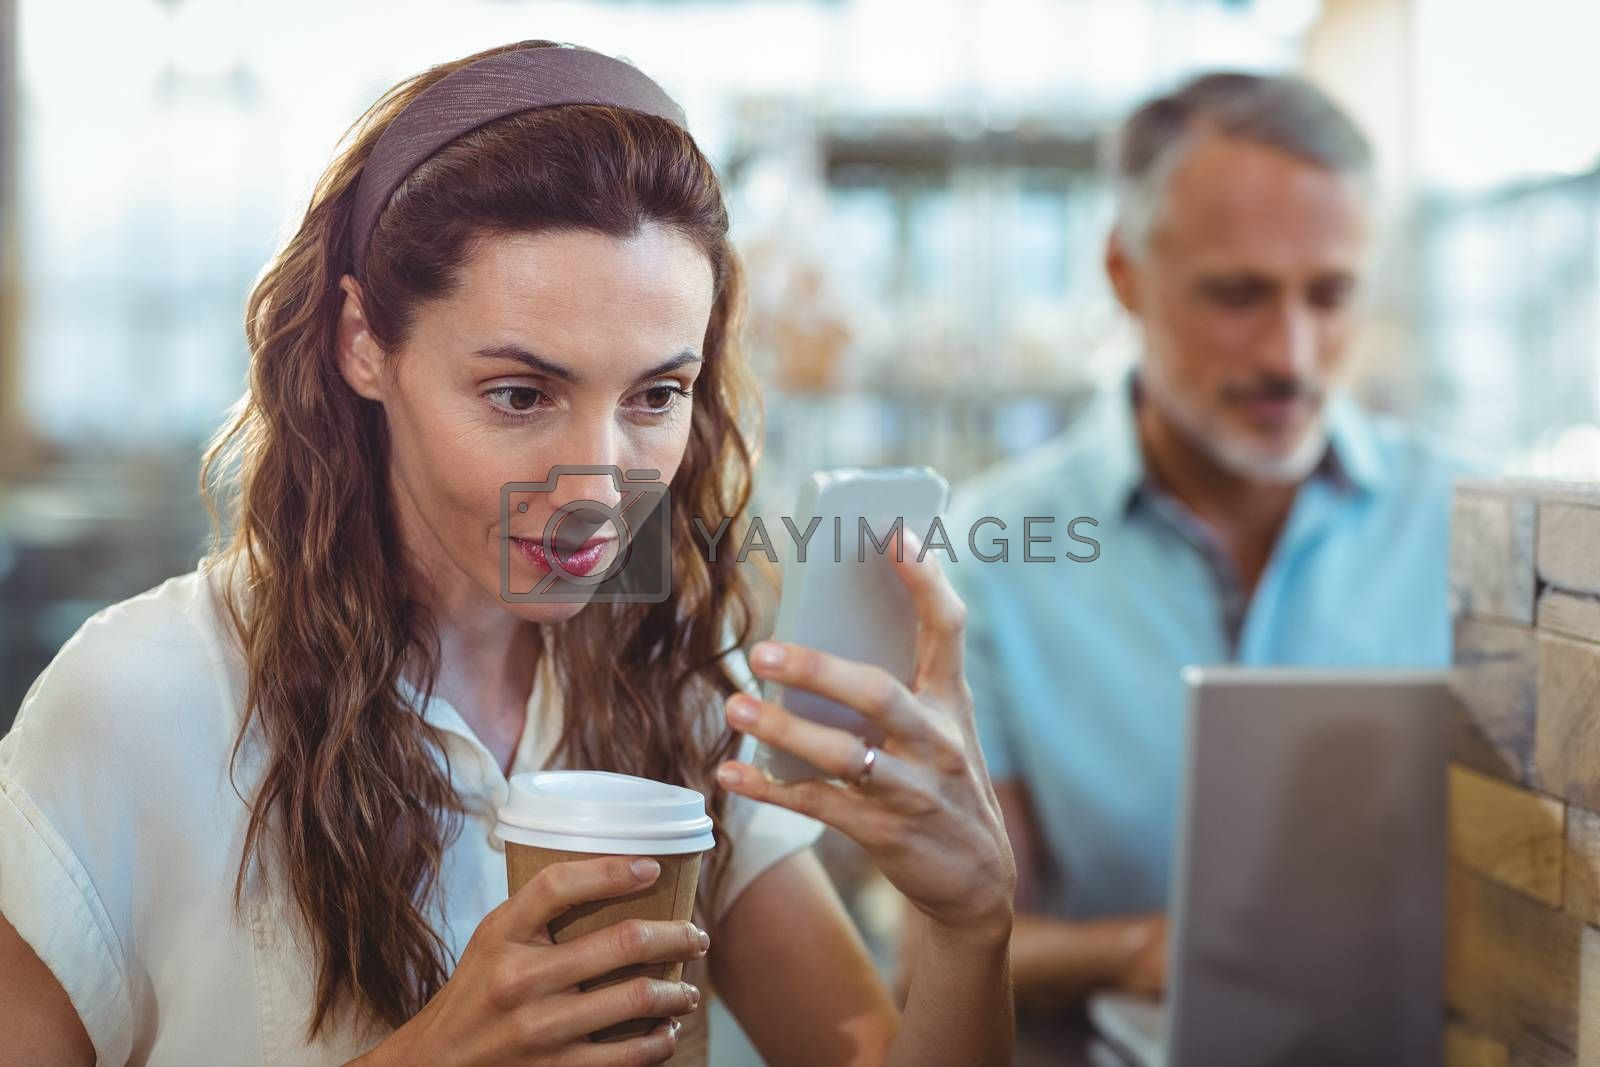 Royalty free image of Pretty brunette using her smartphone with coffee in her hand by Wavebreakmedia